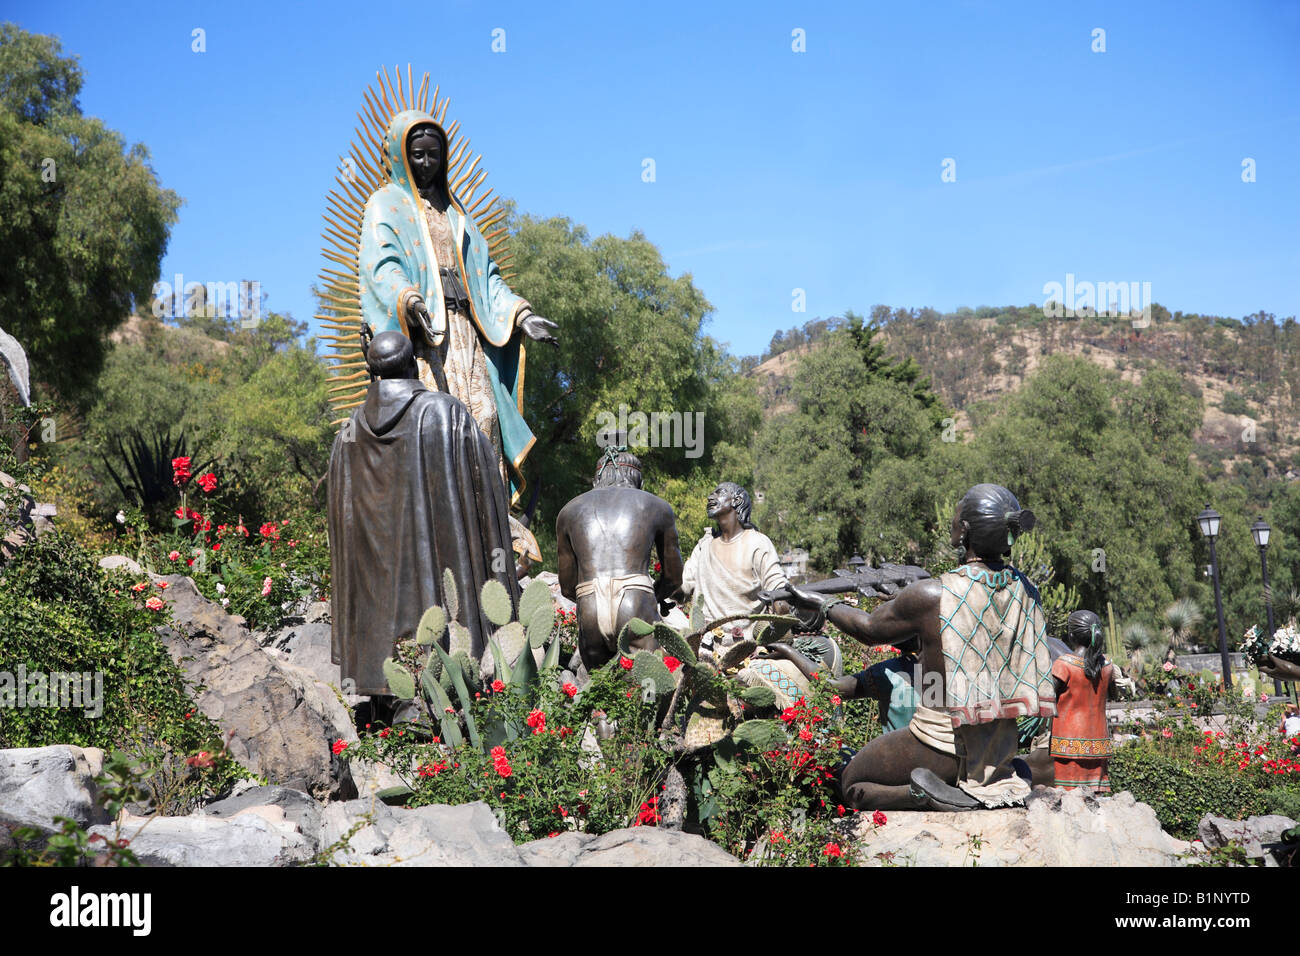 Stock Photo   Tepeyac Hill And Garden Where The Virgin Mary Is Said To Have  Appeared. Basilica Of Our Lady Of Guadalupe Mexico City